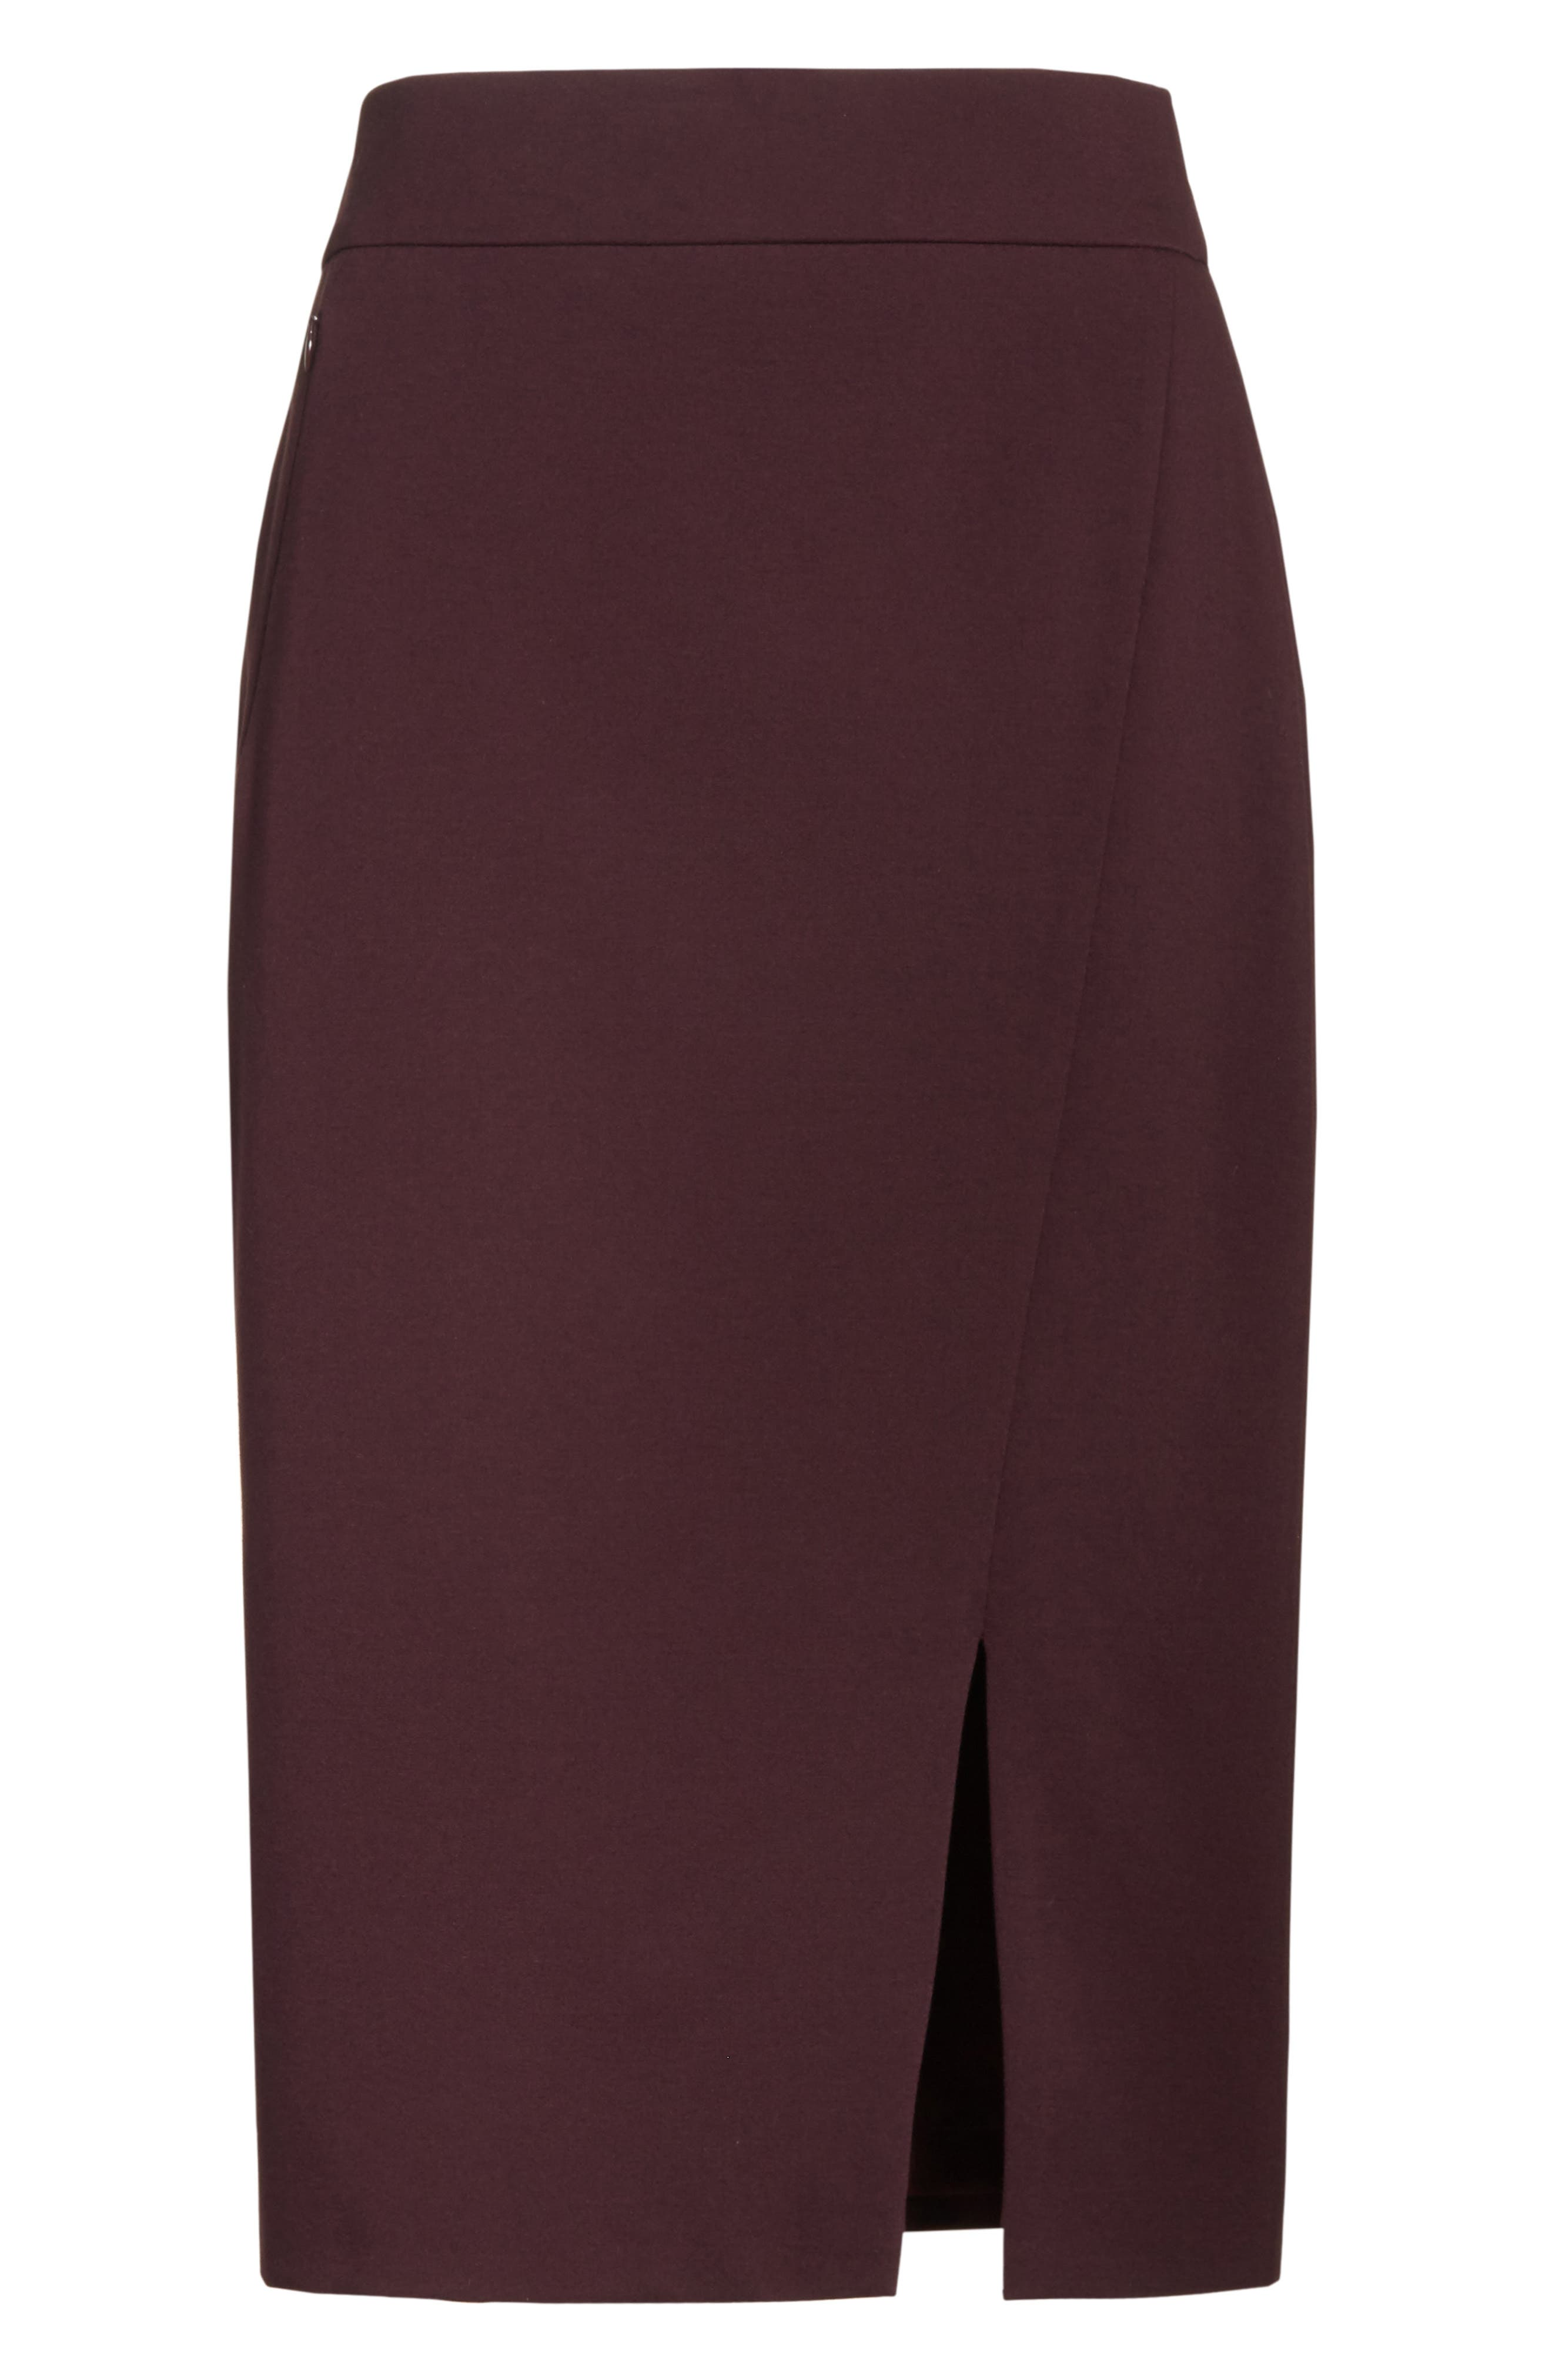 Gabardine Pencil Skirt,                             Alternate thumbnail 6, color,                             930